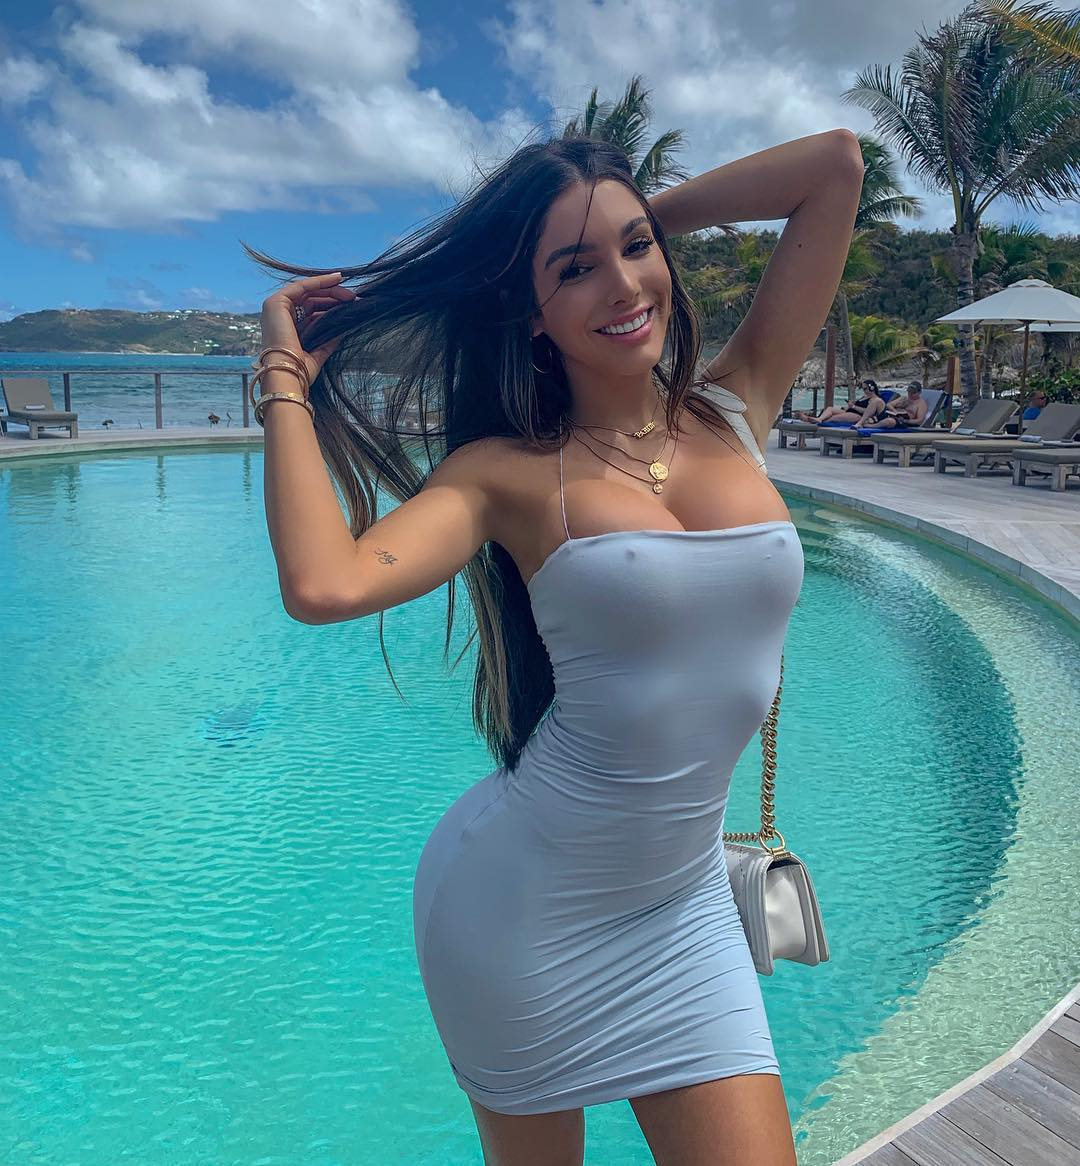 Lyna Perez Hot Dress Pose By The Pool - Lyna Perez Hot Dress Pose By The Pool